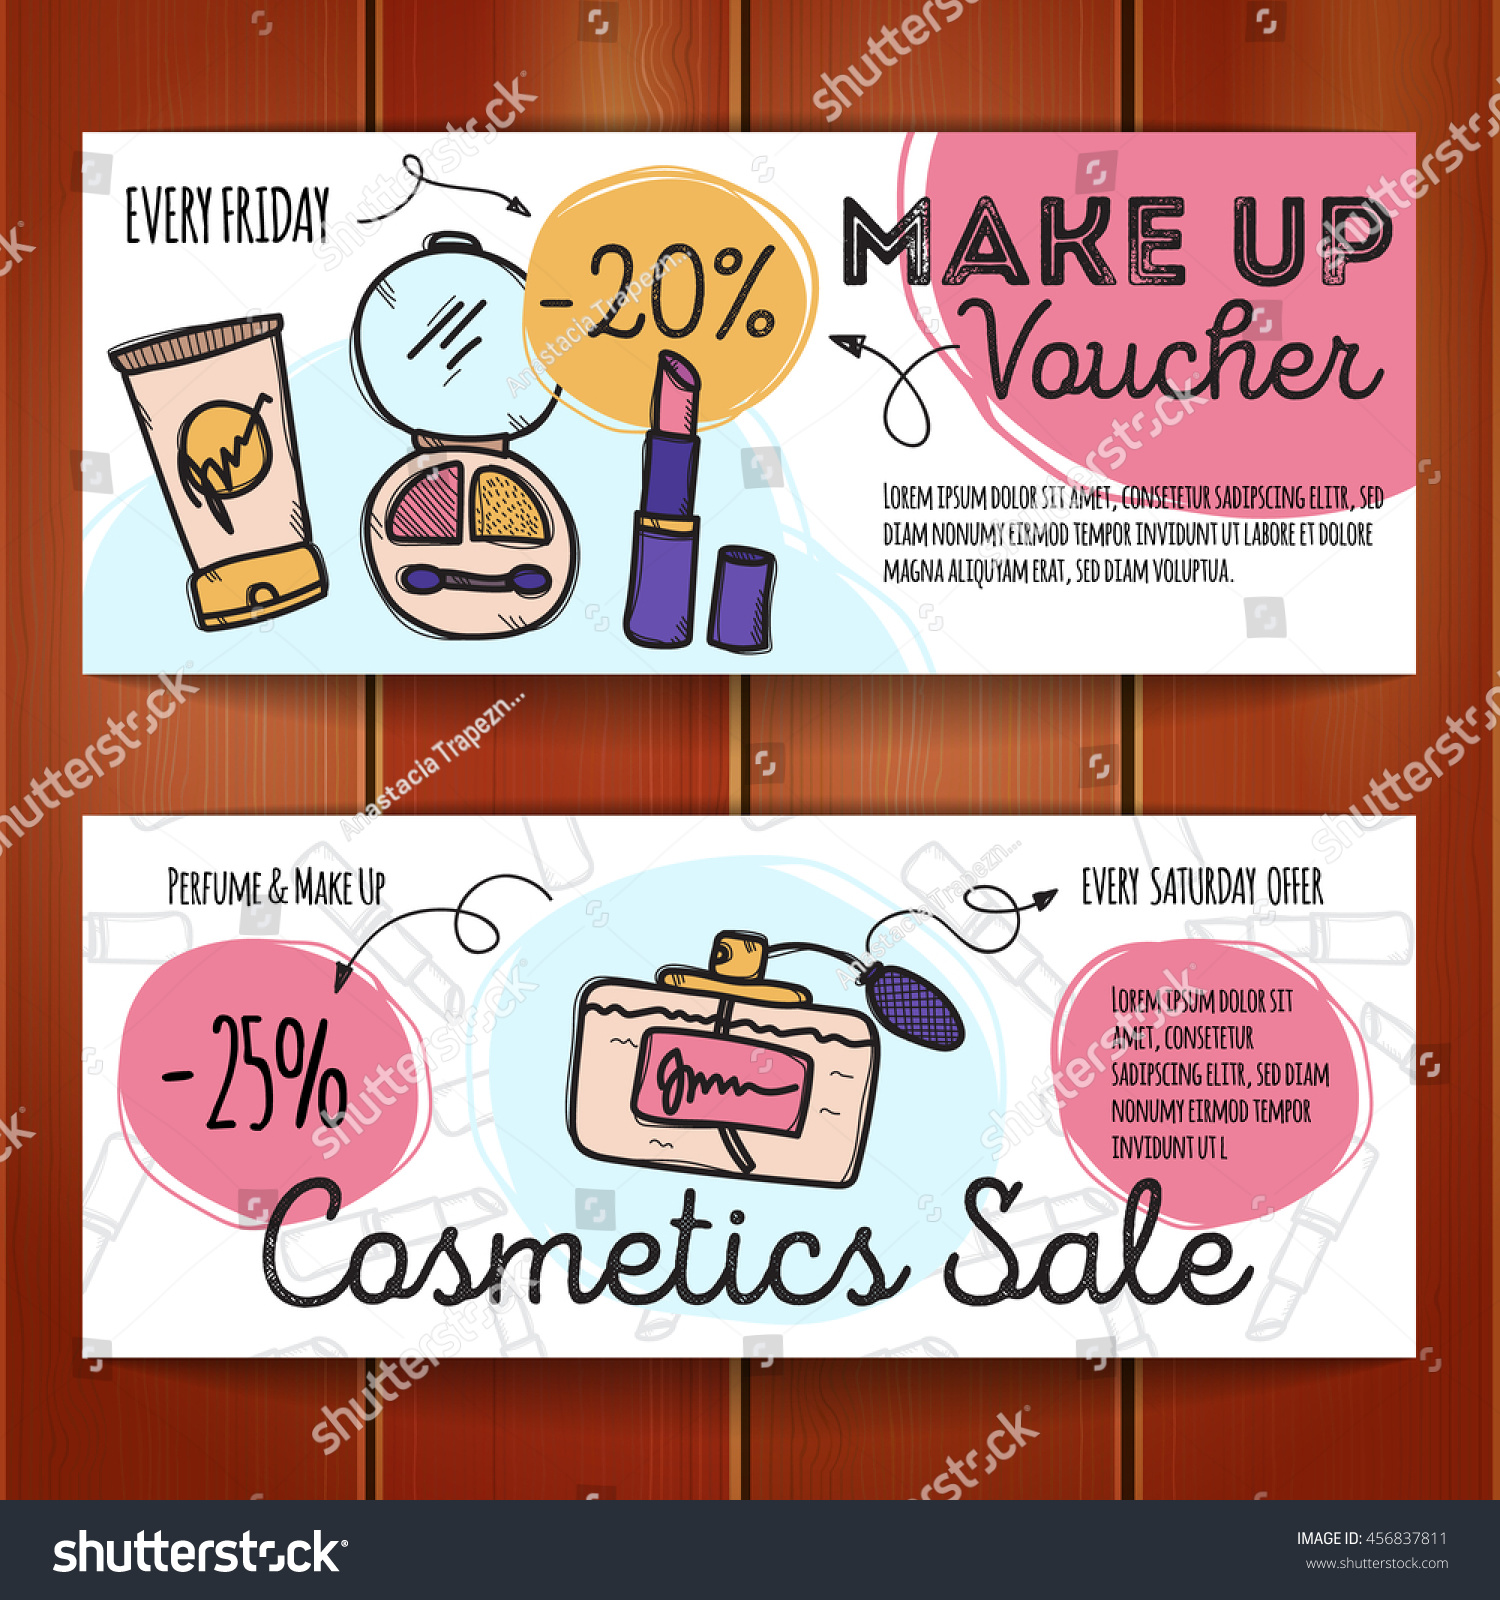 Np set makeup coupons